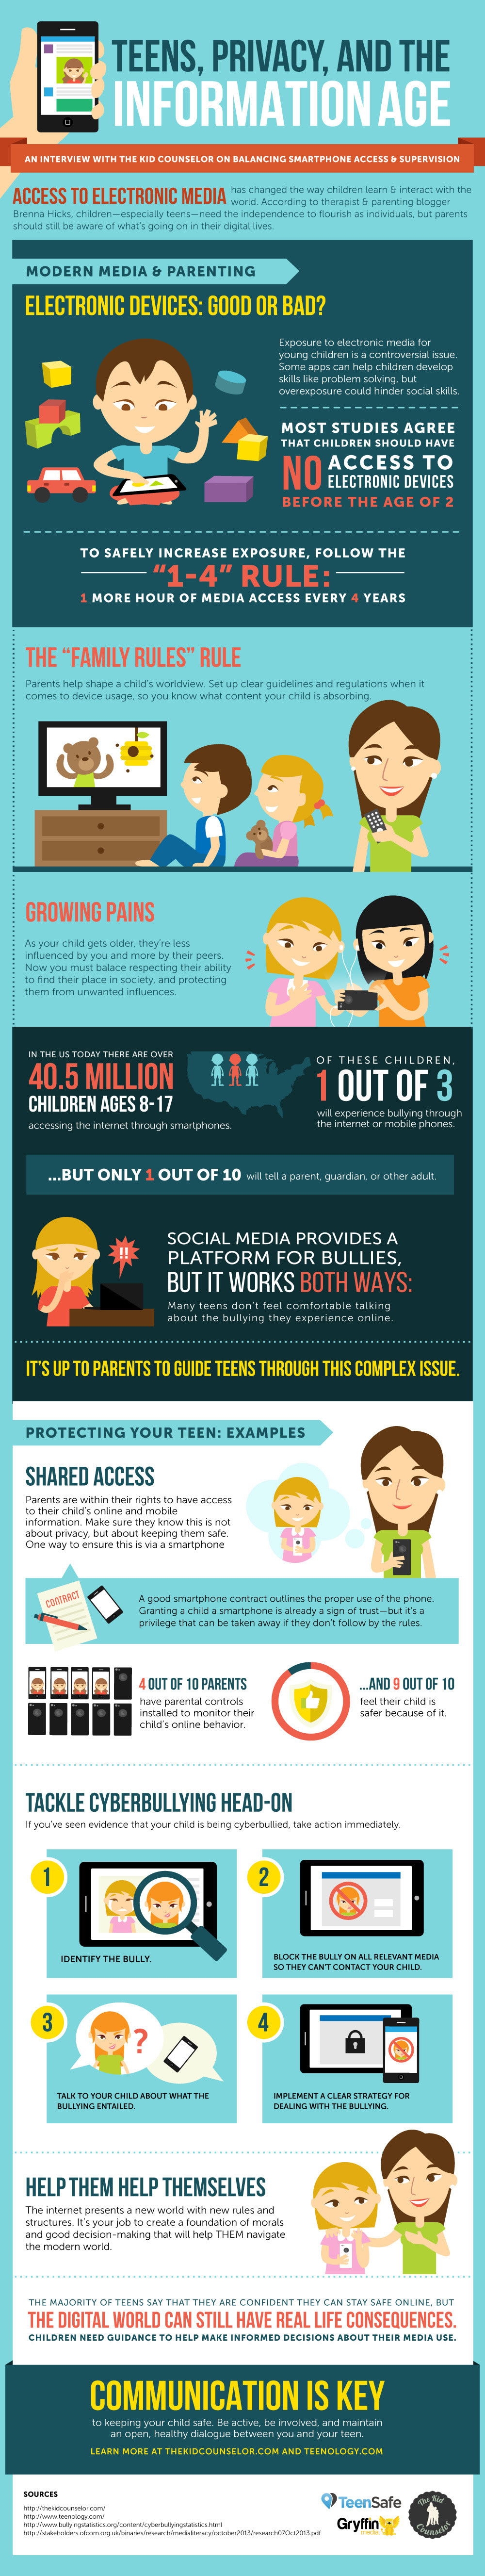 Infographic: Teens, Privacy, and the Information Age